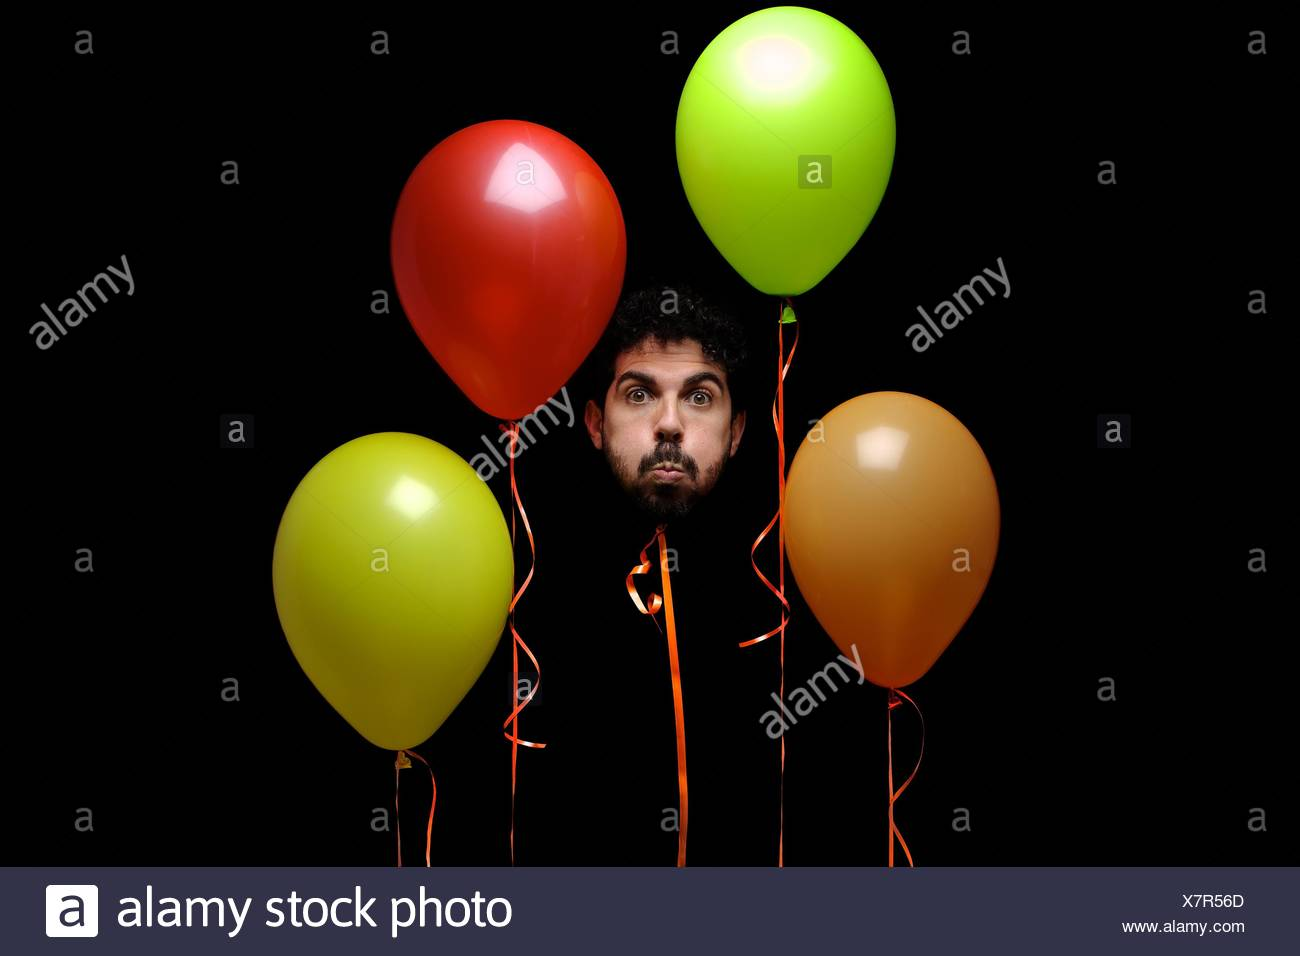 Man's head on ribbon with multicolored balloons - Stock Image